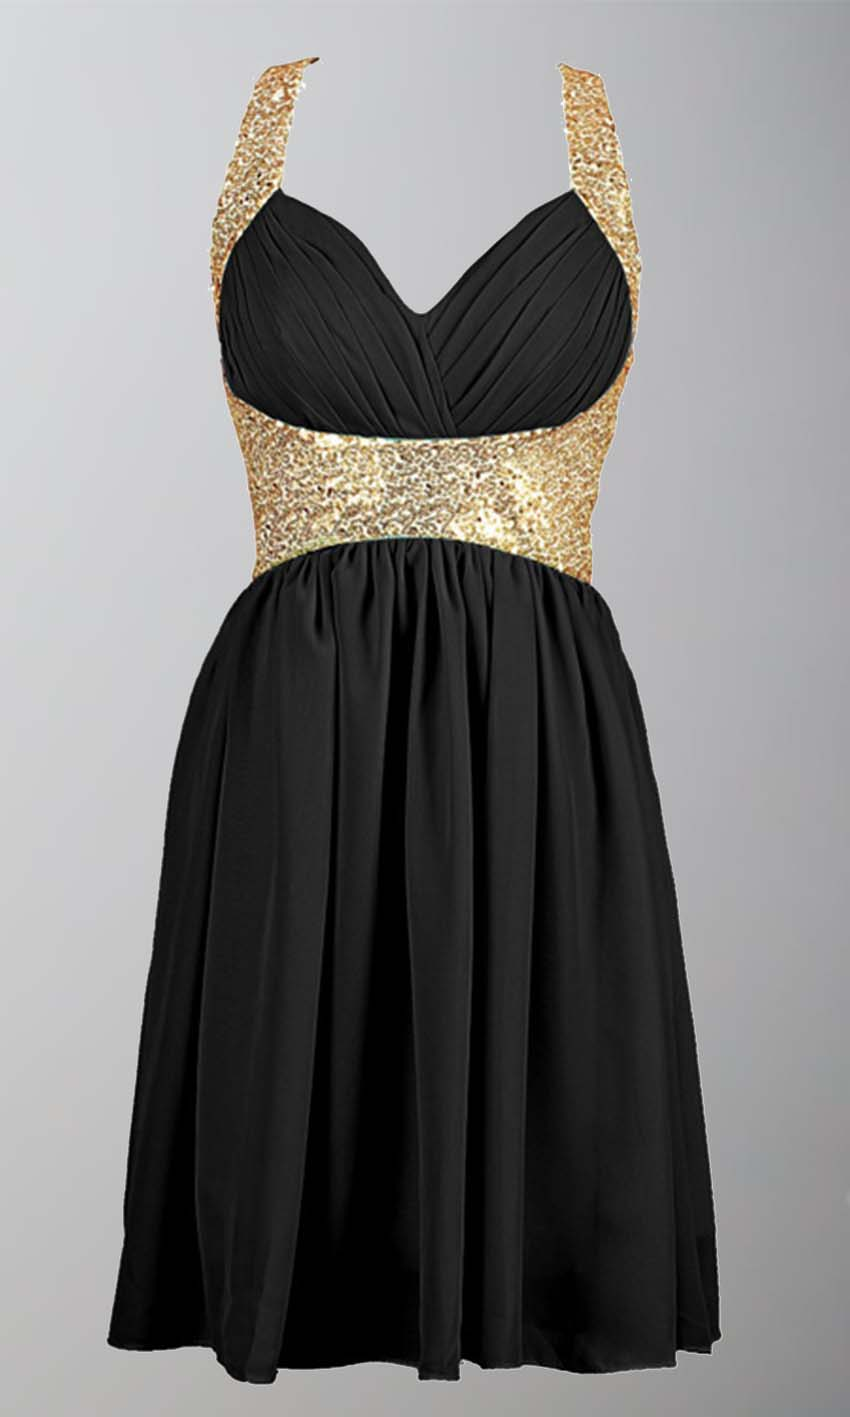 Bridesmaid Dresses Black And Gold - Wedding Guest Dresses